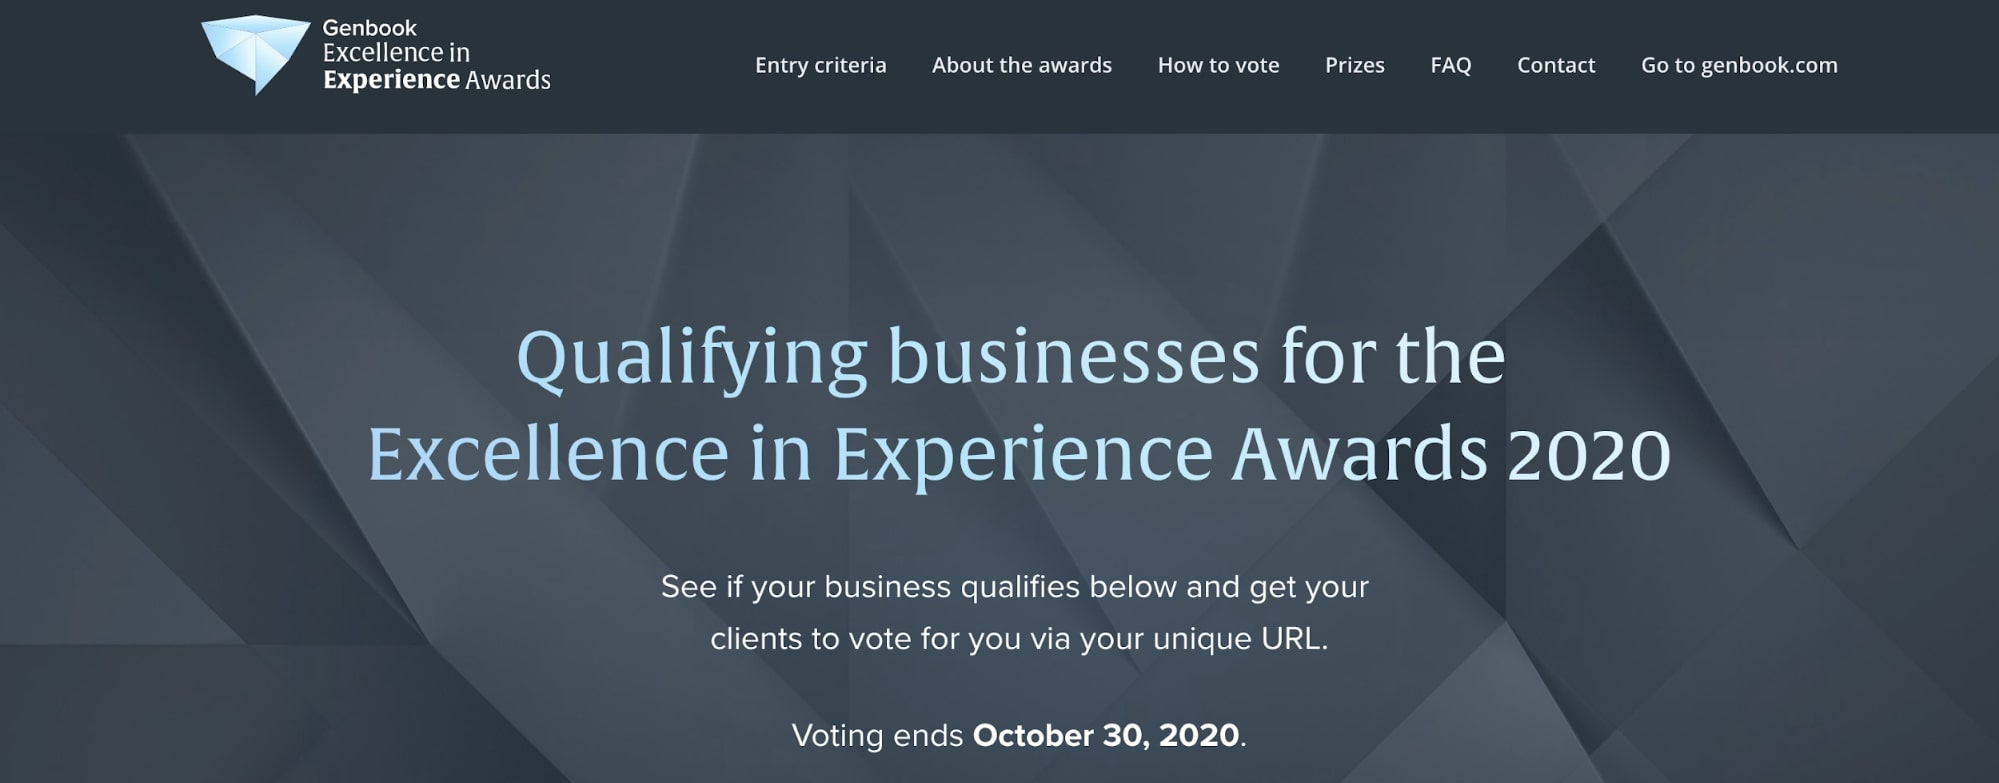 Genbook excellence in experience award